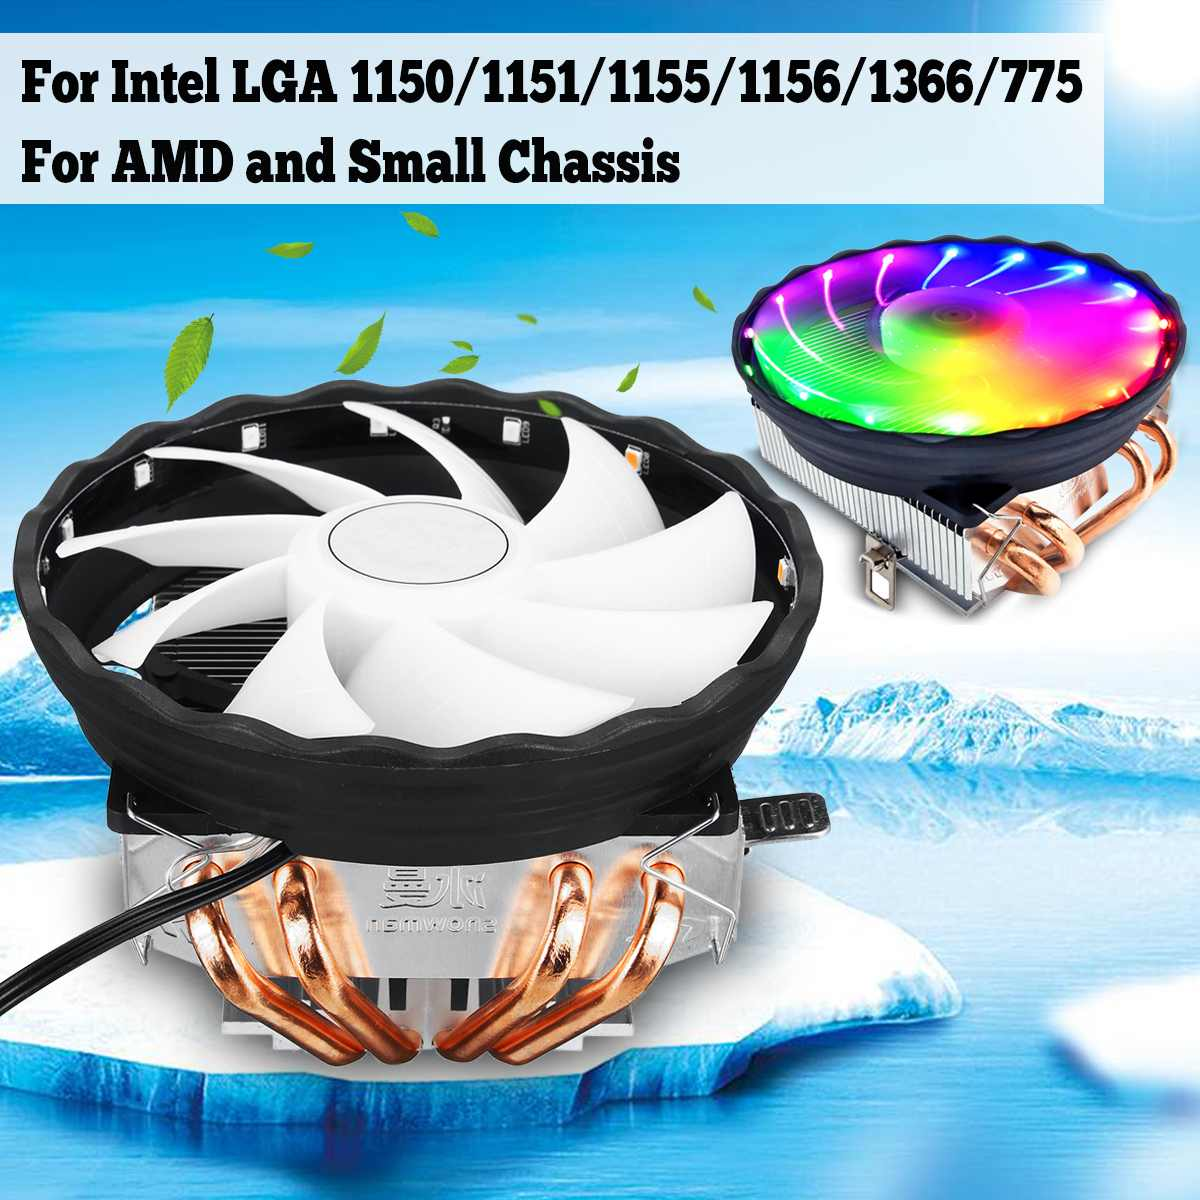 120mm LED <font><b>RGB</b></font> Fan 4 Heatpipe Radiator <font><b>CPU</b></font> <font><b>Cooler</b></font> Cooling for Intel LGA 1150/<font><b>1151</b></font>/1155/1156/1366/775 for AMD AM3+ AM3 AM2+ AM2 image